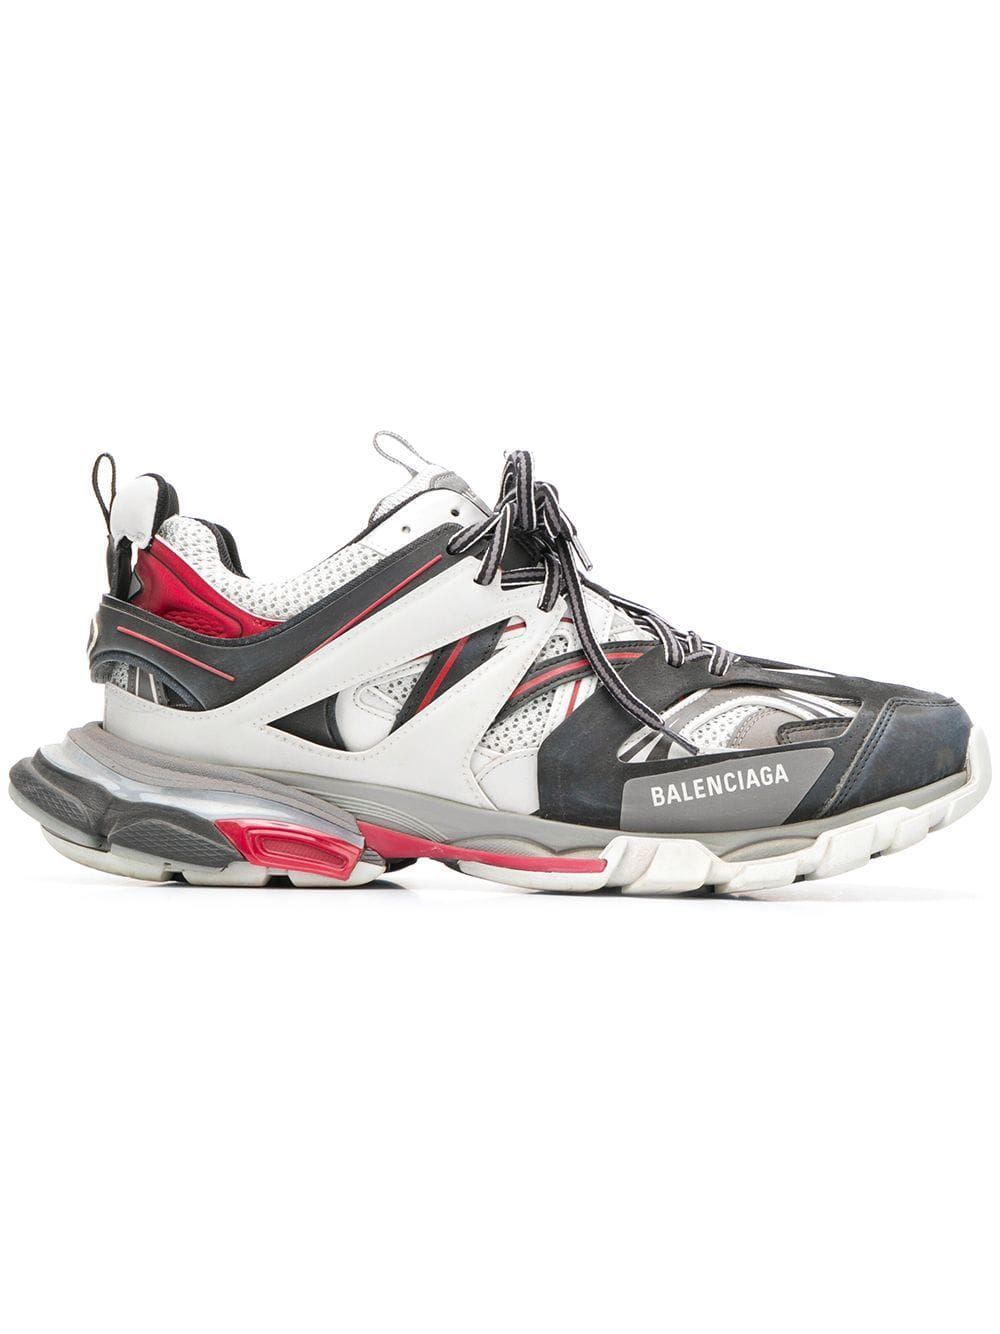 Balenciaga Track Sneakers is part of Balenciaga shoes - Shop Balenciaga Track sneakers